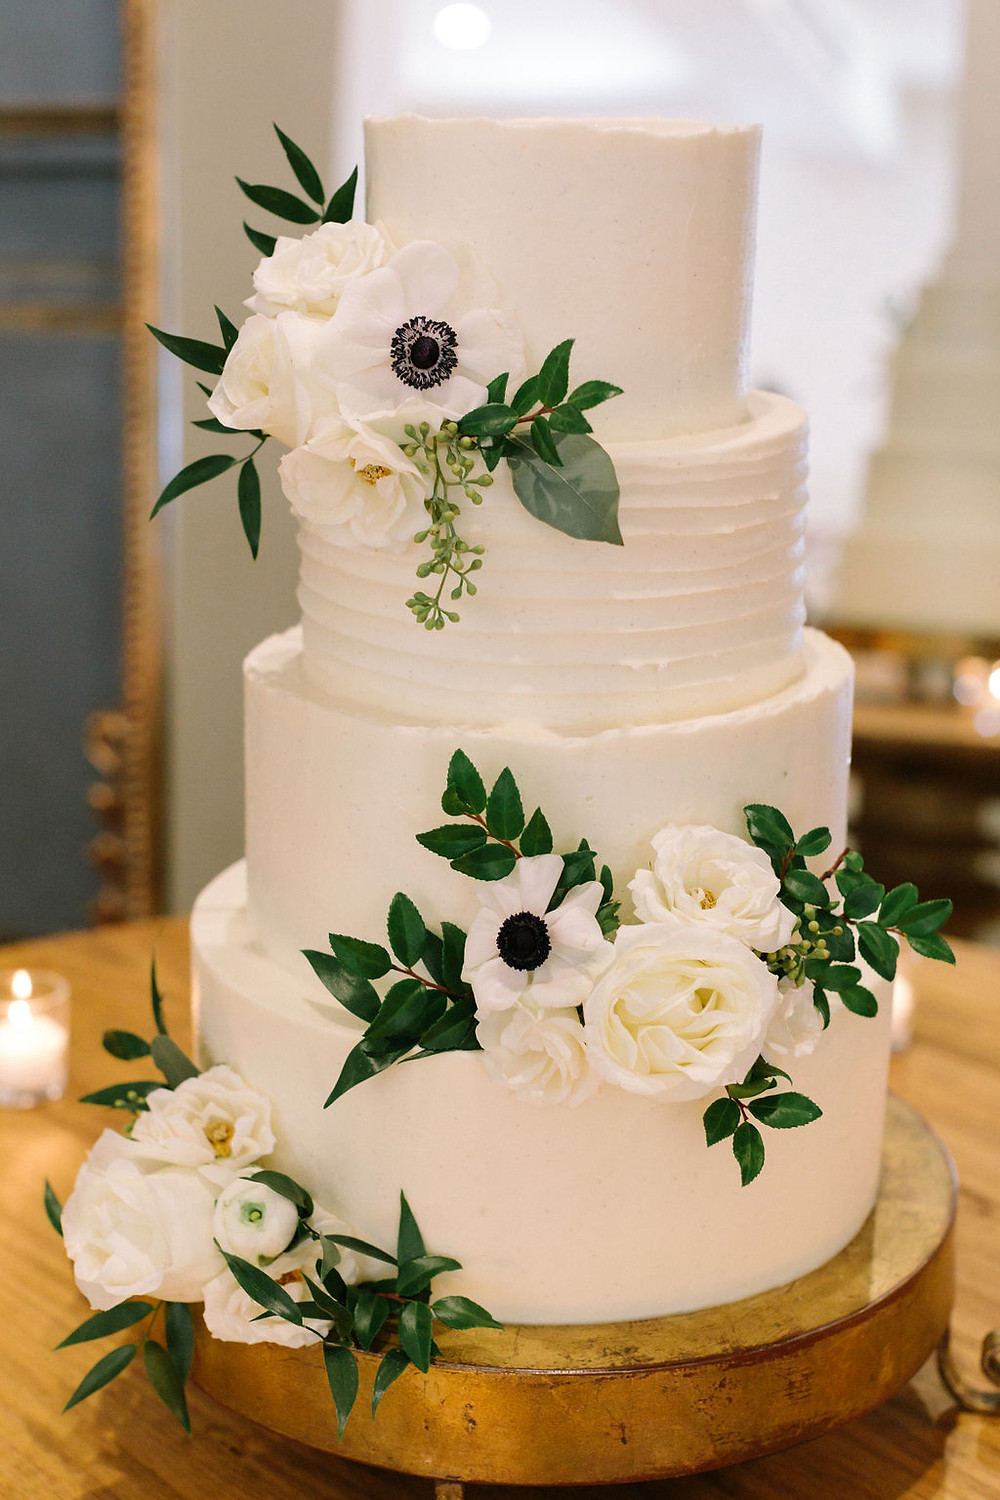 bittersweet confections cake with cake flowers in New Orleans